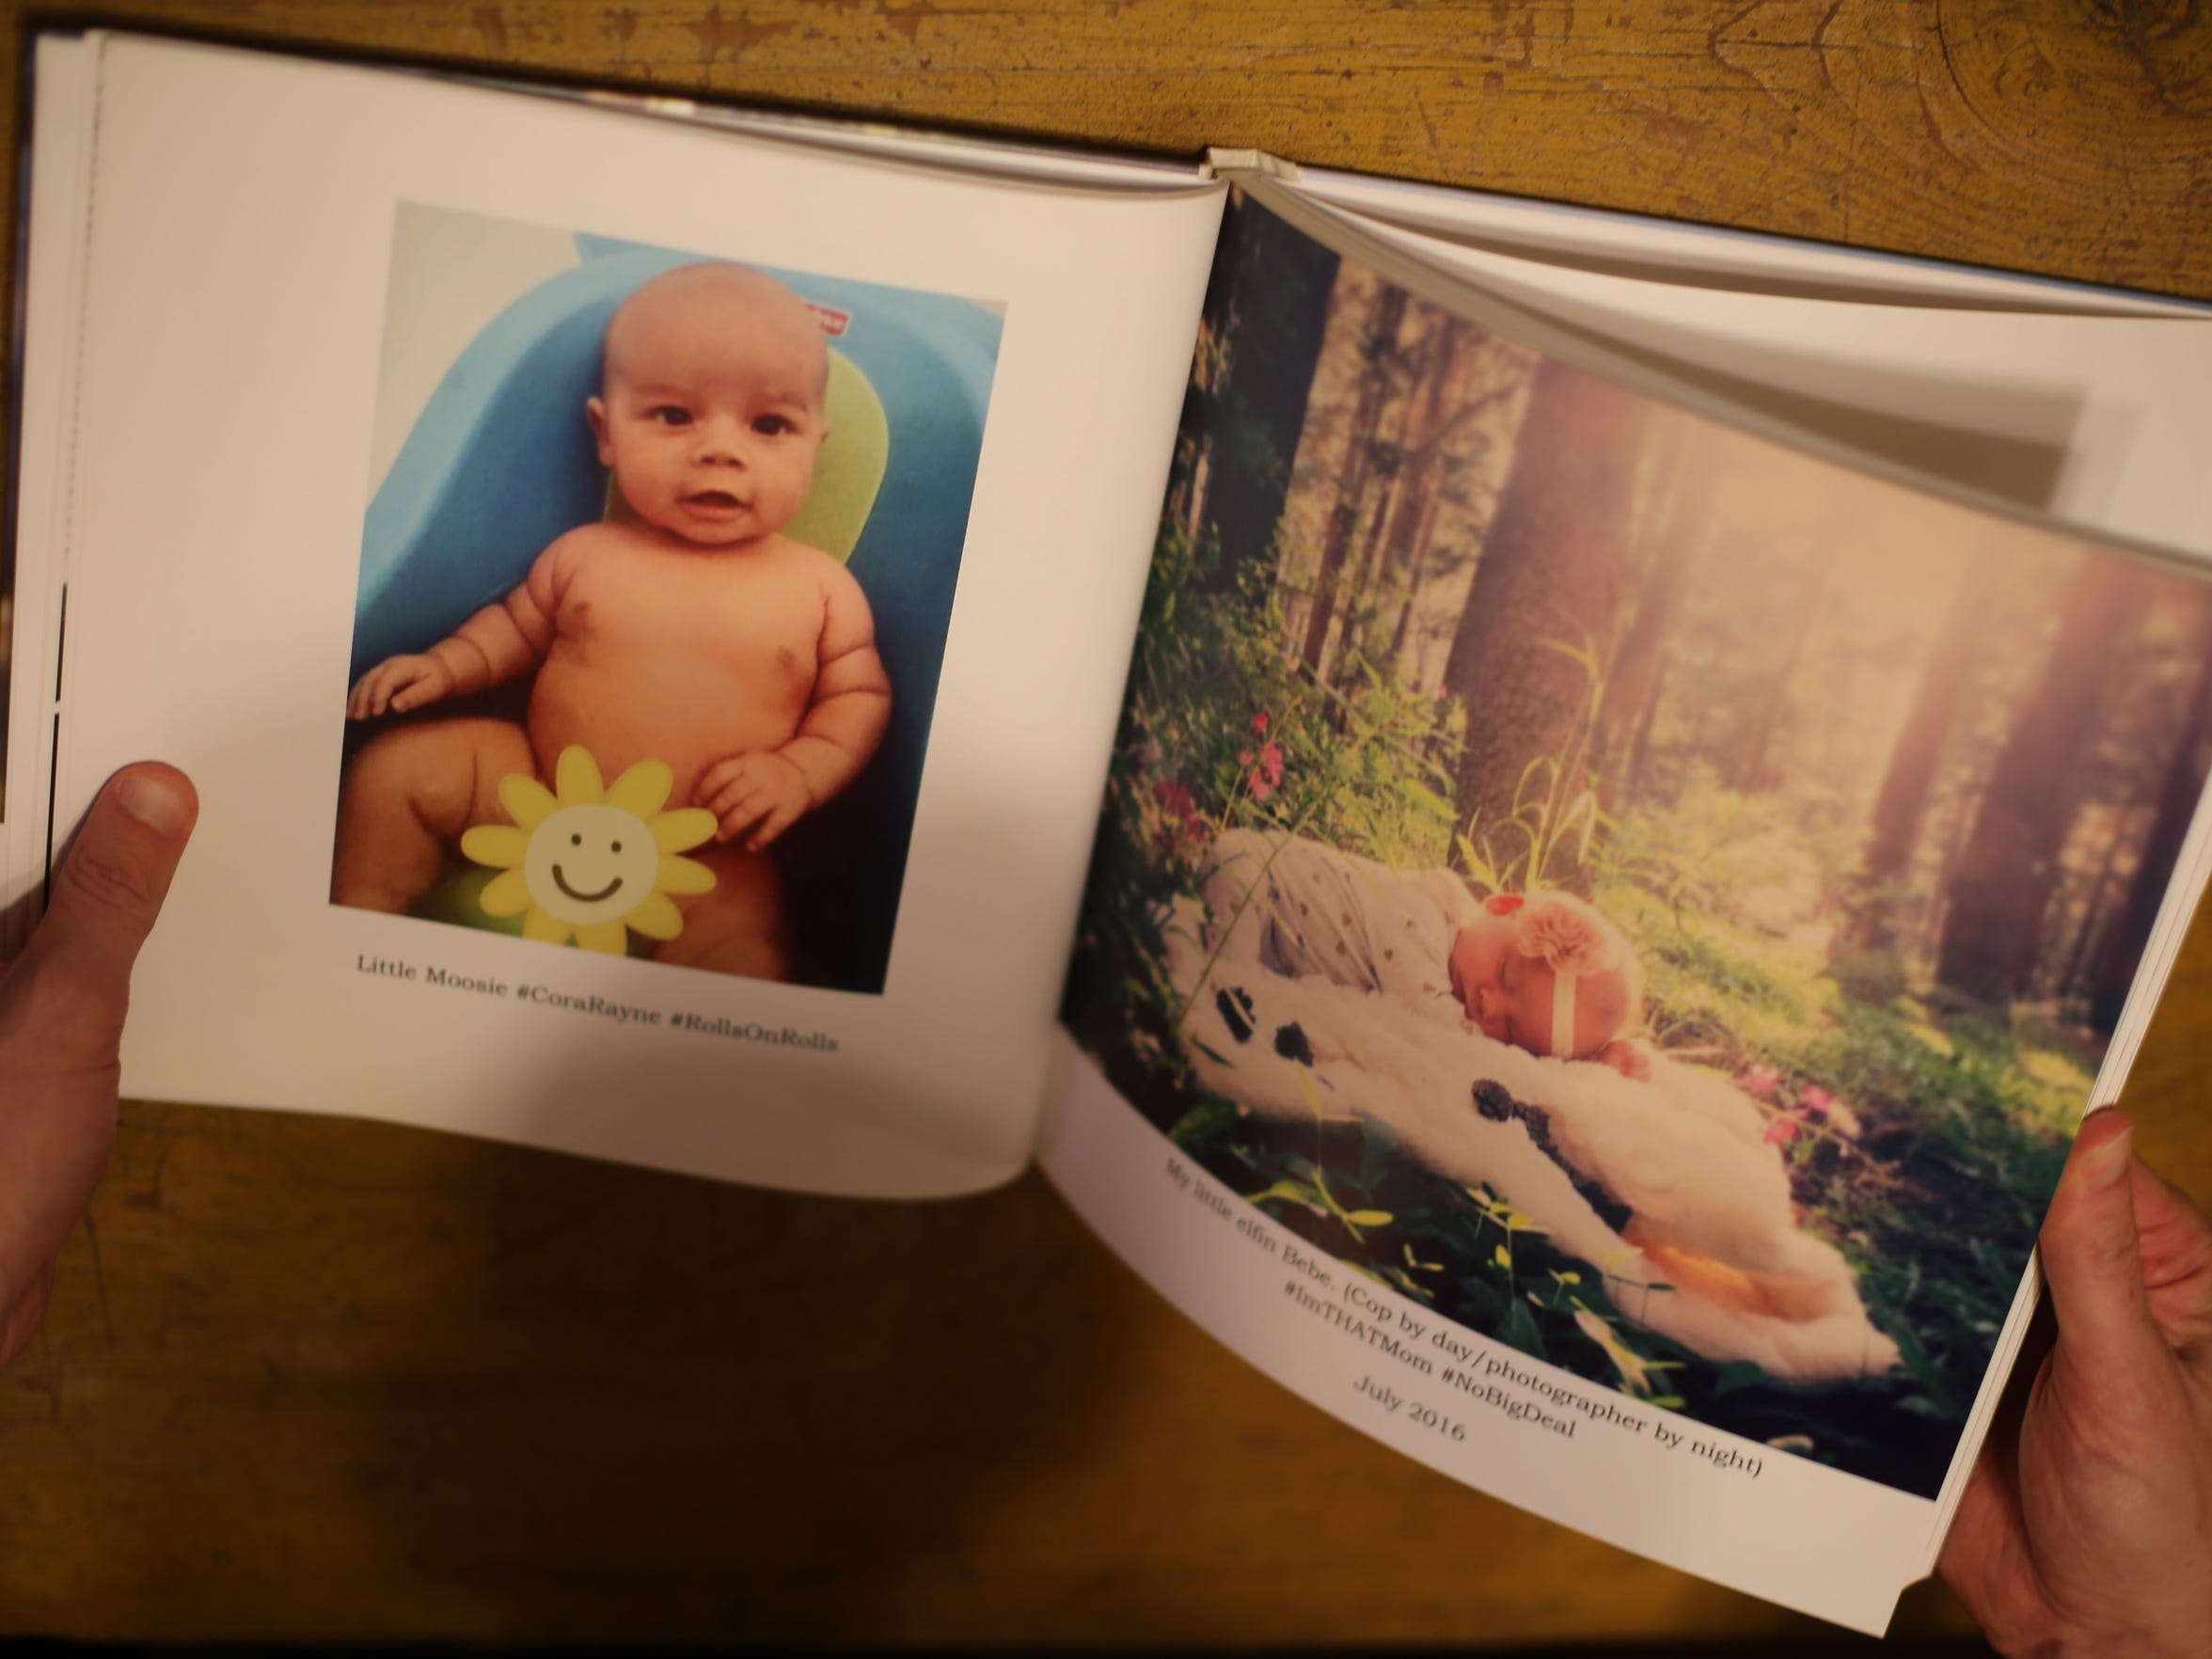 A photo book with a picture of Cora Zerebny, the daughter